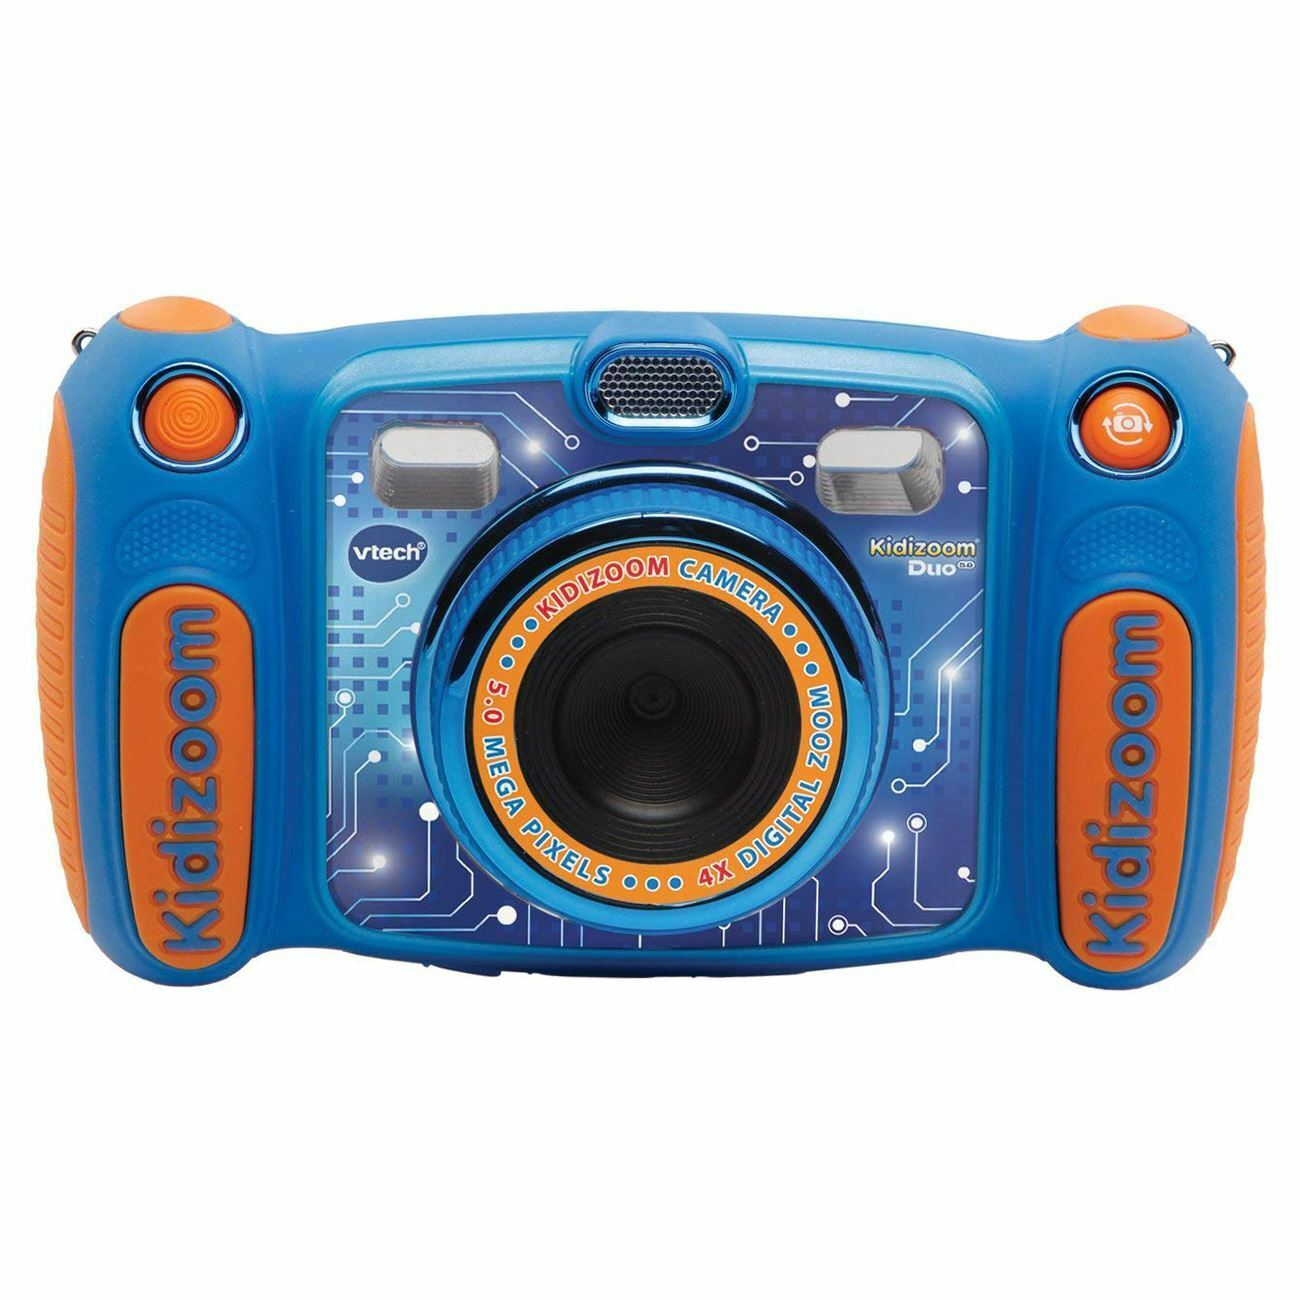 VTECH KIDIZOOM DUO 5.0 DIGITAL CAMERA - blueE KIDS TOY OFFICIAL NEW